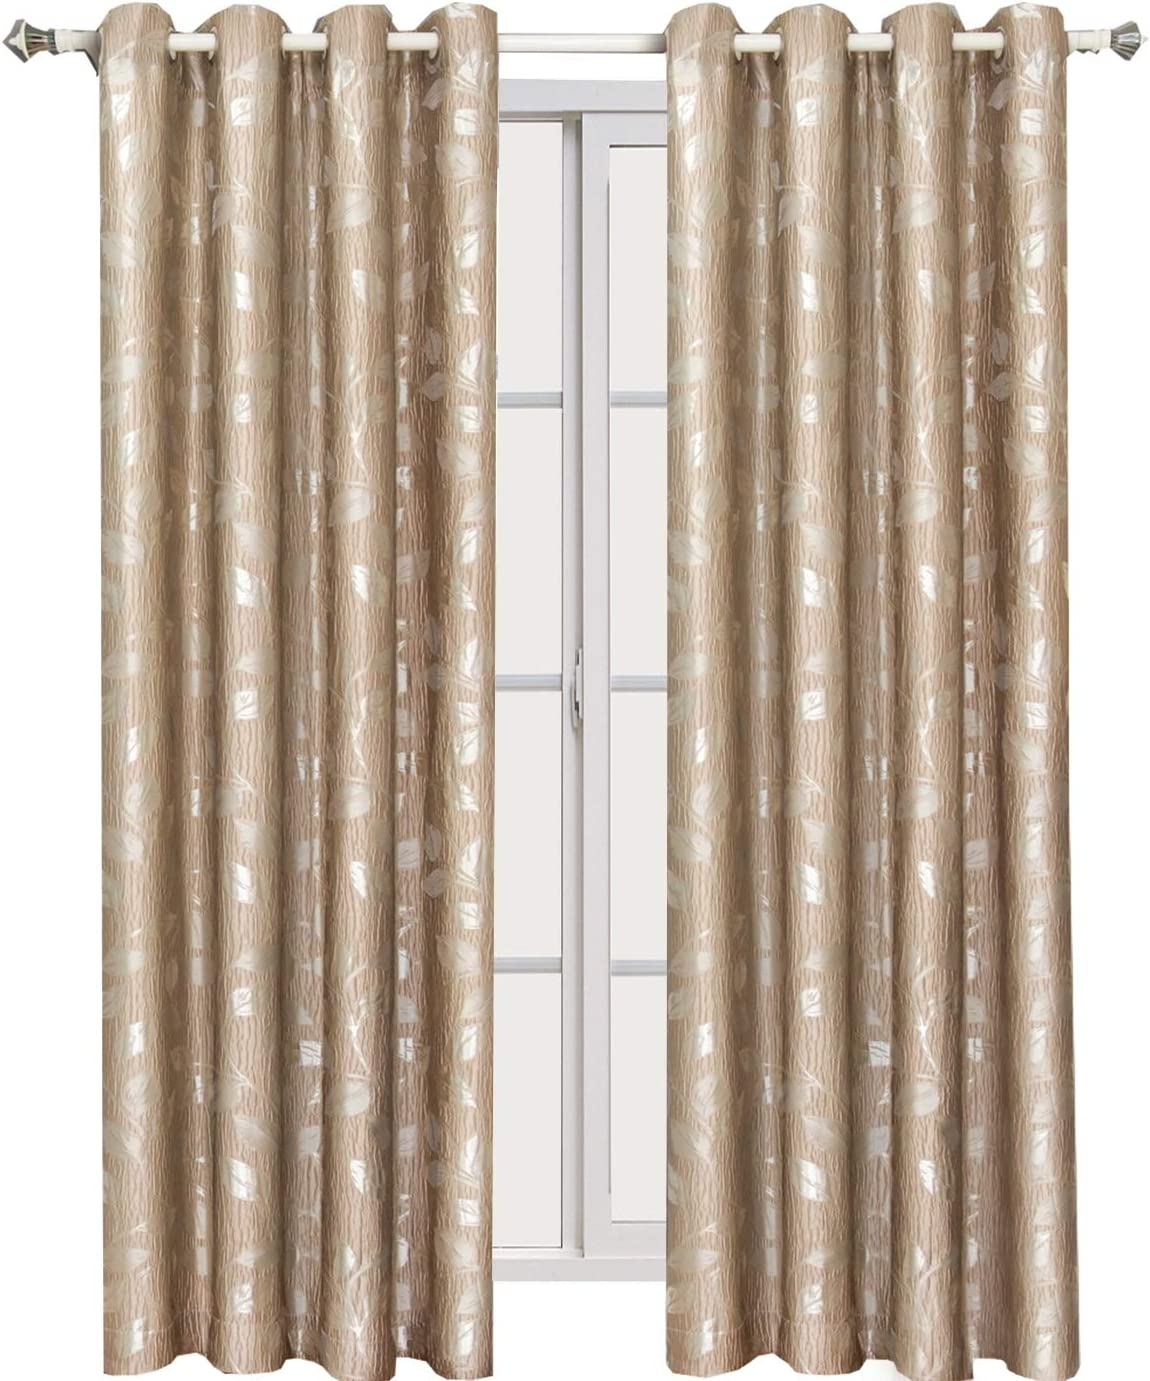 Royal Tradition Charlotte 104-Inch Wide x 108-Inch Long, Jacquard Set of 2 Grommet Top Curtains, Mocha